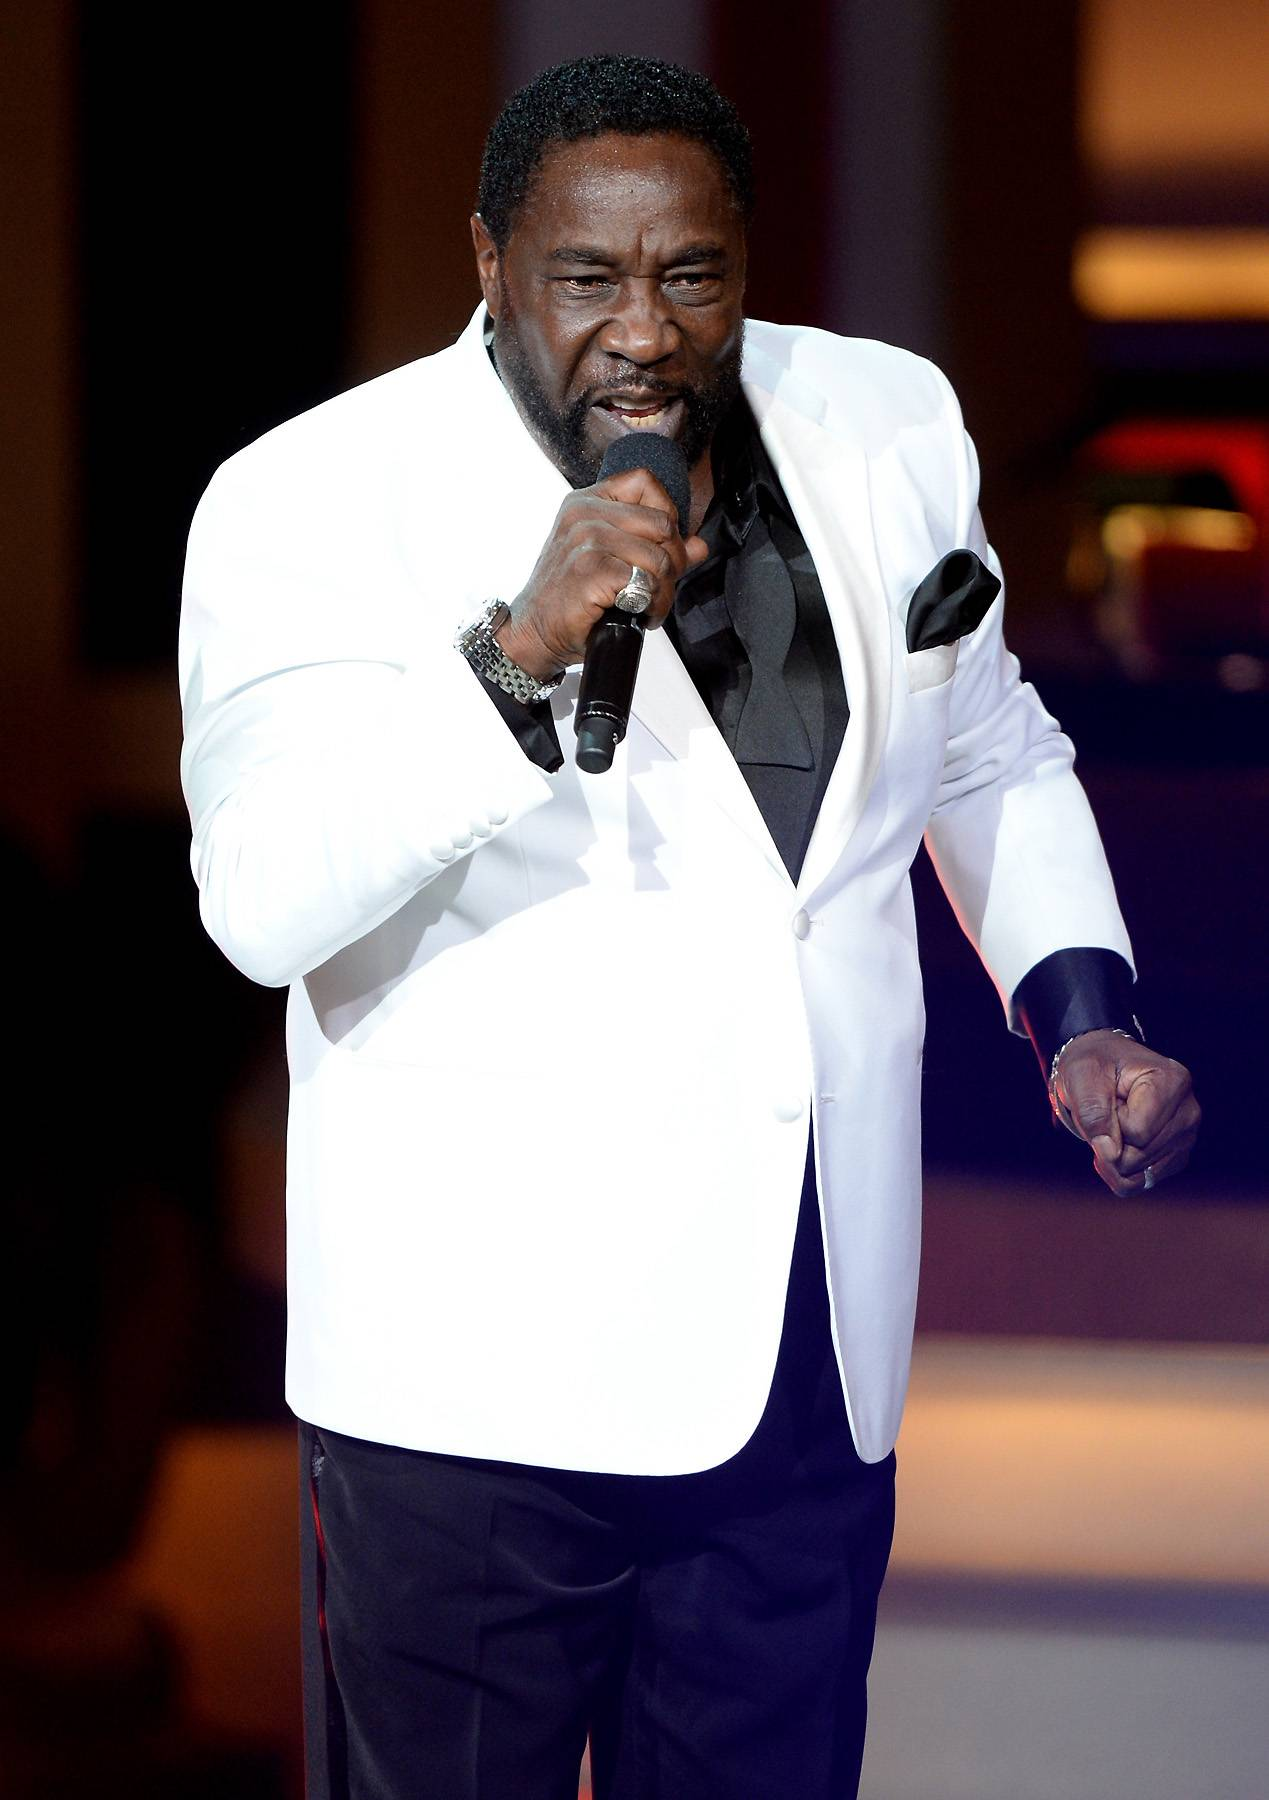 Surprise! - Surprise performer and R&B great Eddie Levert joined Celebration of Gospel to go foward in faith.(Photo: Jason Kempin/Getty Images for BET)